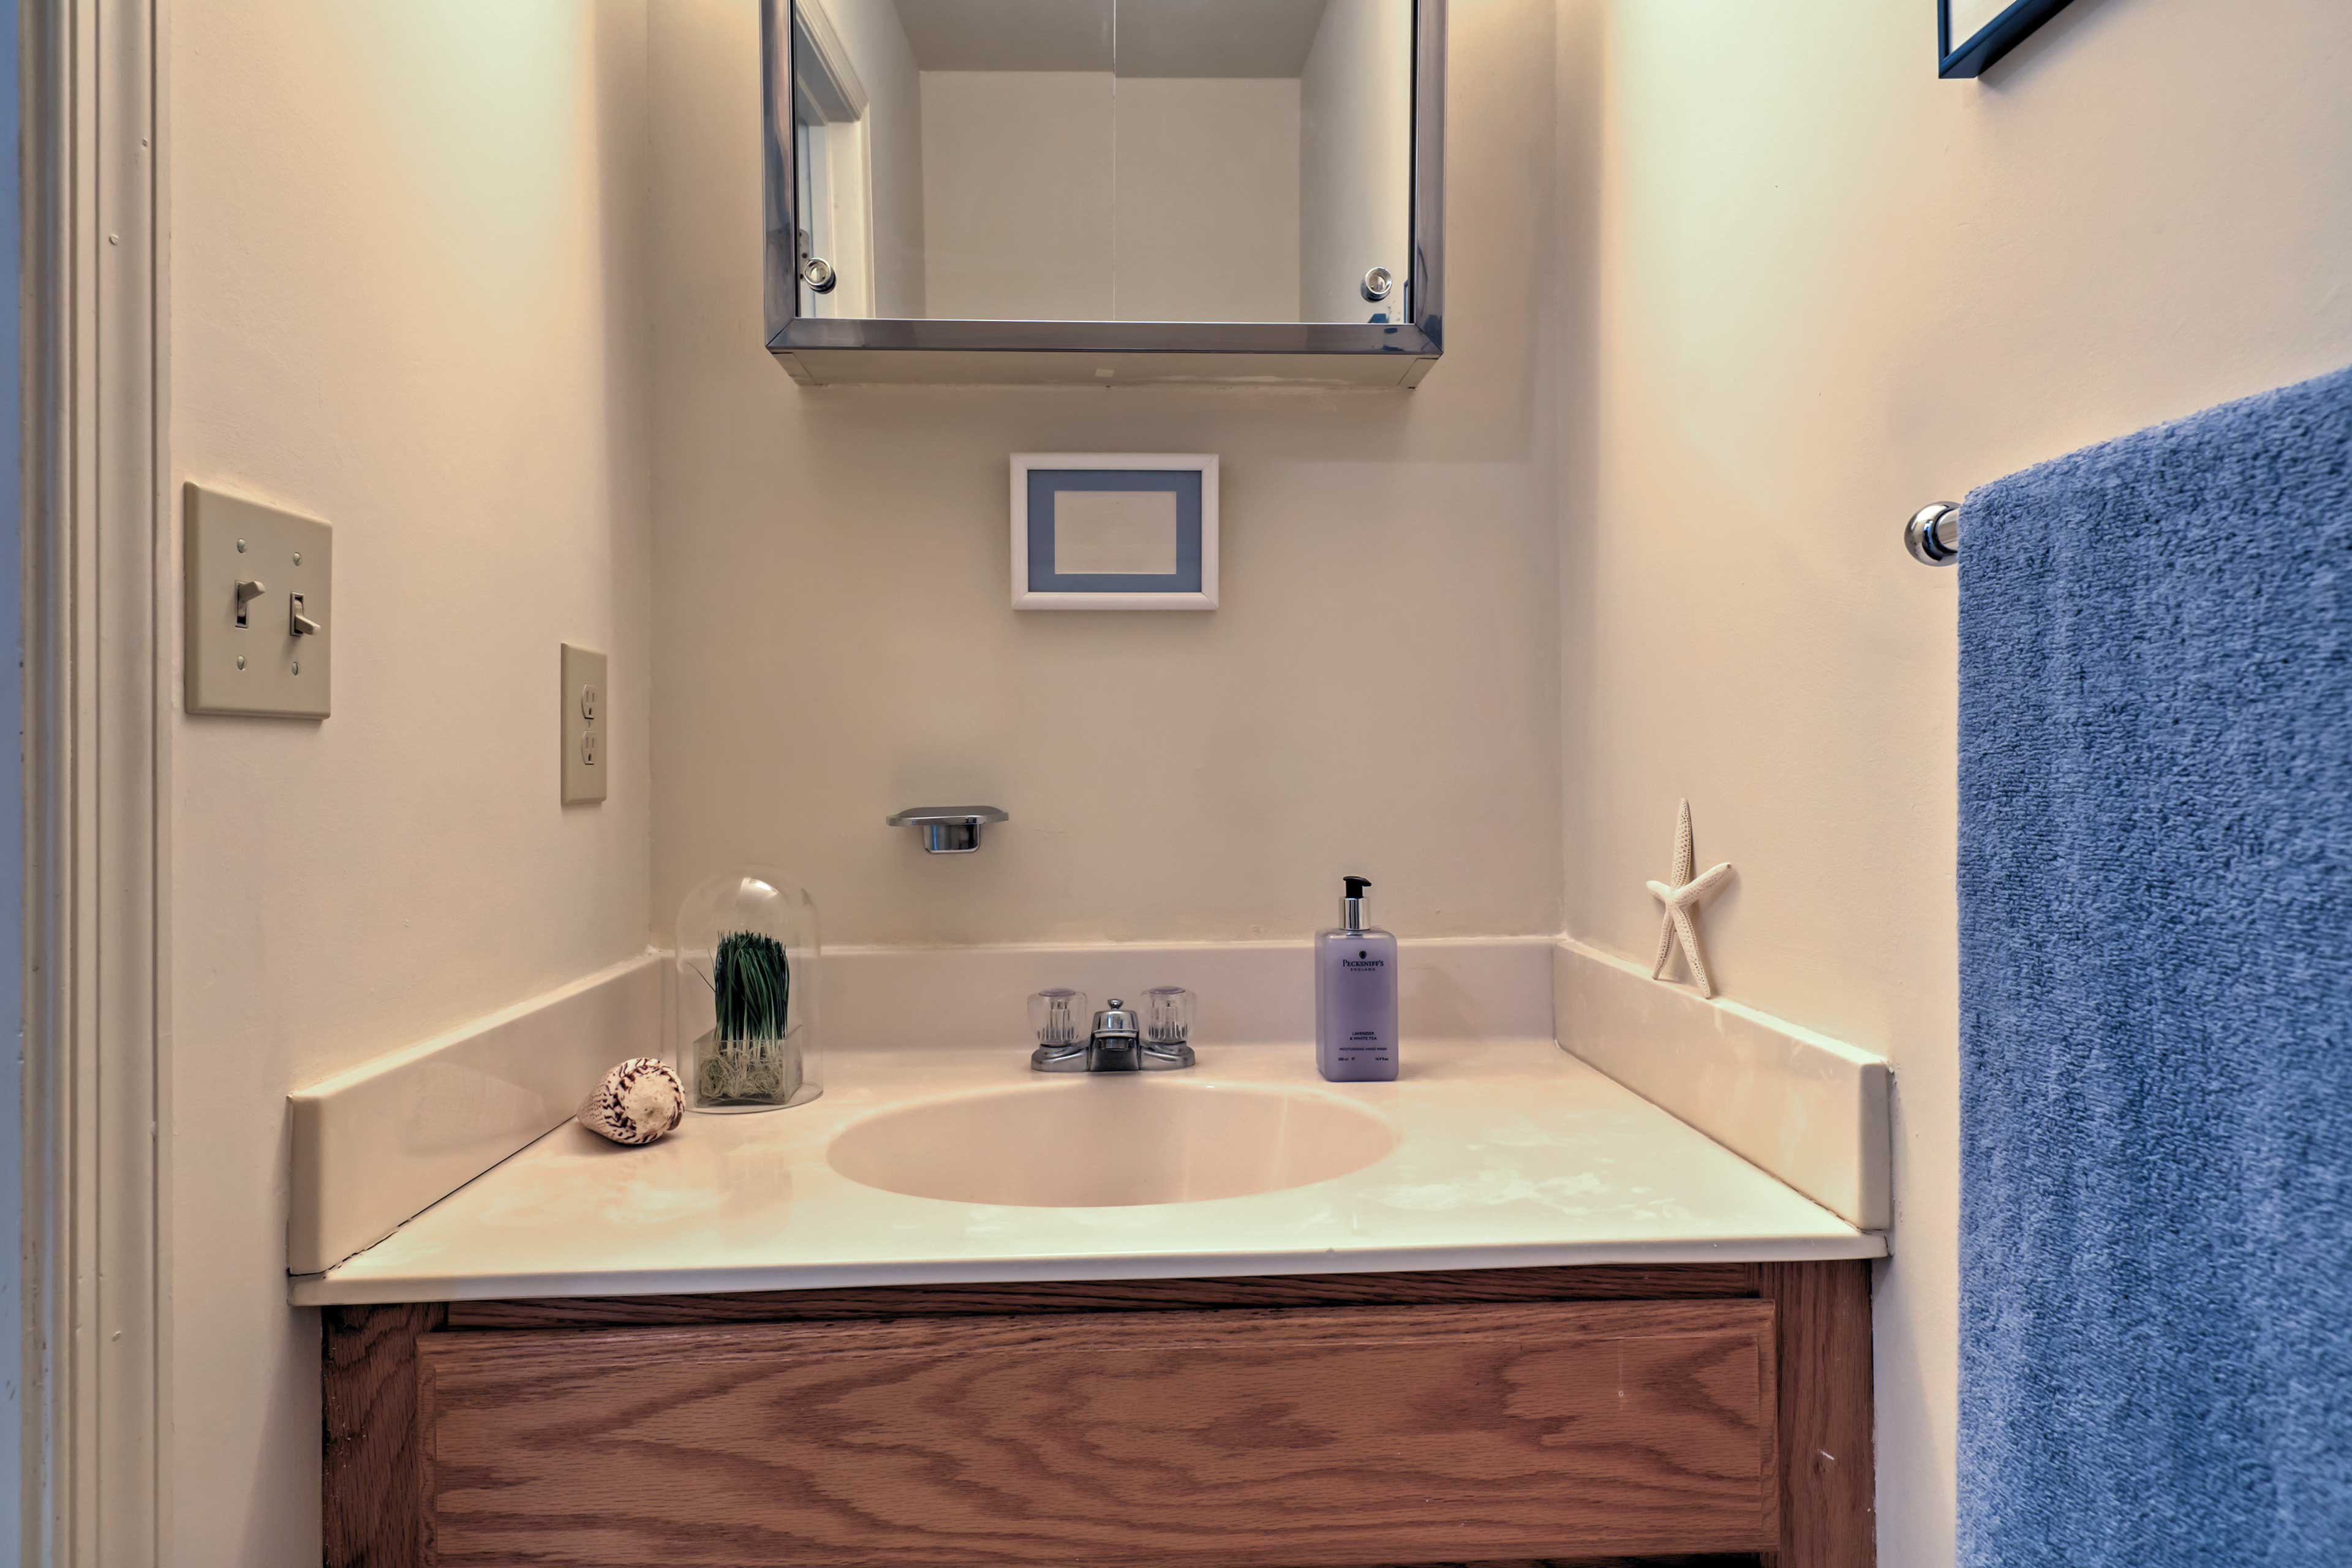 The property features 2.5 bathrooms throughout.